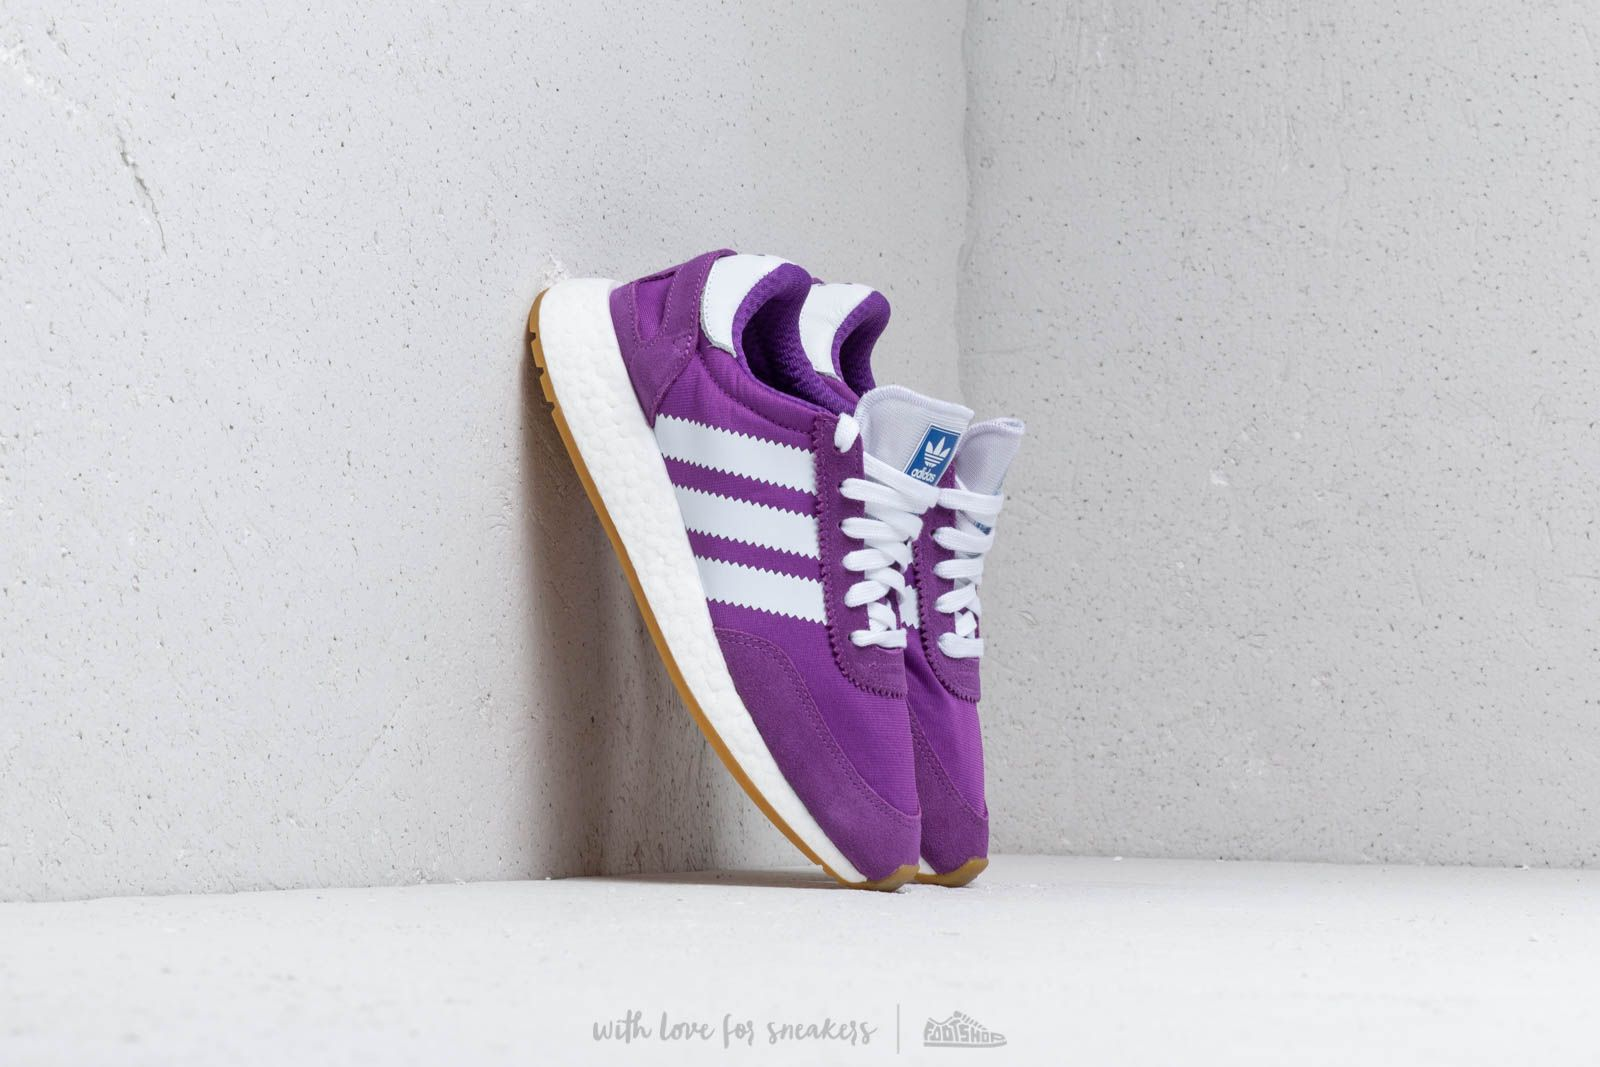 efaca01ef673d7 adidas I-5923 W Active Purple  Cloud White  Gum at a great price